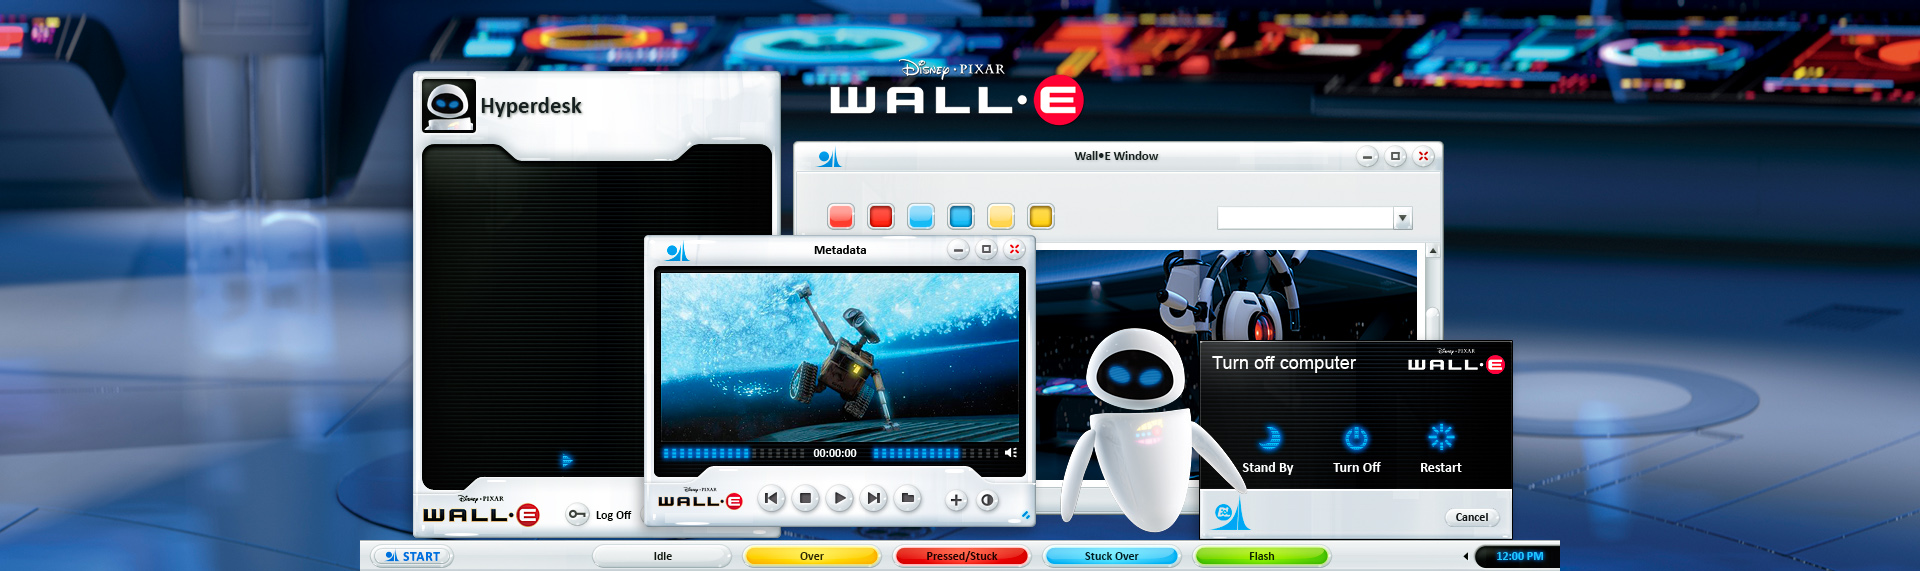 Disney Pixar's EVE  Client: Under License from The Walt Disney Company  Introducing the official Pixar-approved EVE Windows desktop theme. Powered by The Skins Factory's Hyperdesk advanced Windows desktop theming solution, this desktop theme featured 2 themes based on EVE's high-gloss, white body and blue LEDs and includes over 50 stylized desktop icons, 18 wallpapers from the hit film, and a Windows Media Player skin. This Windows desktop theme is no longer available.